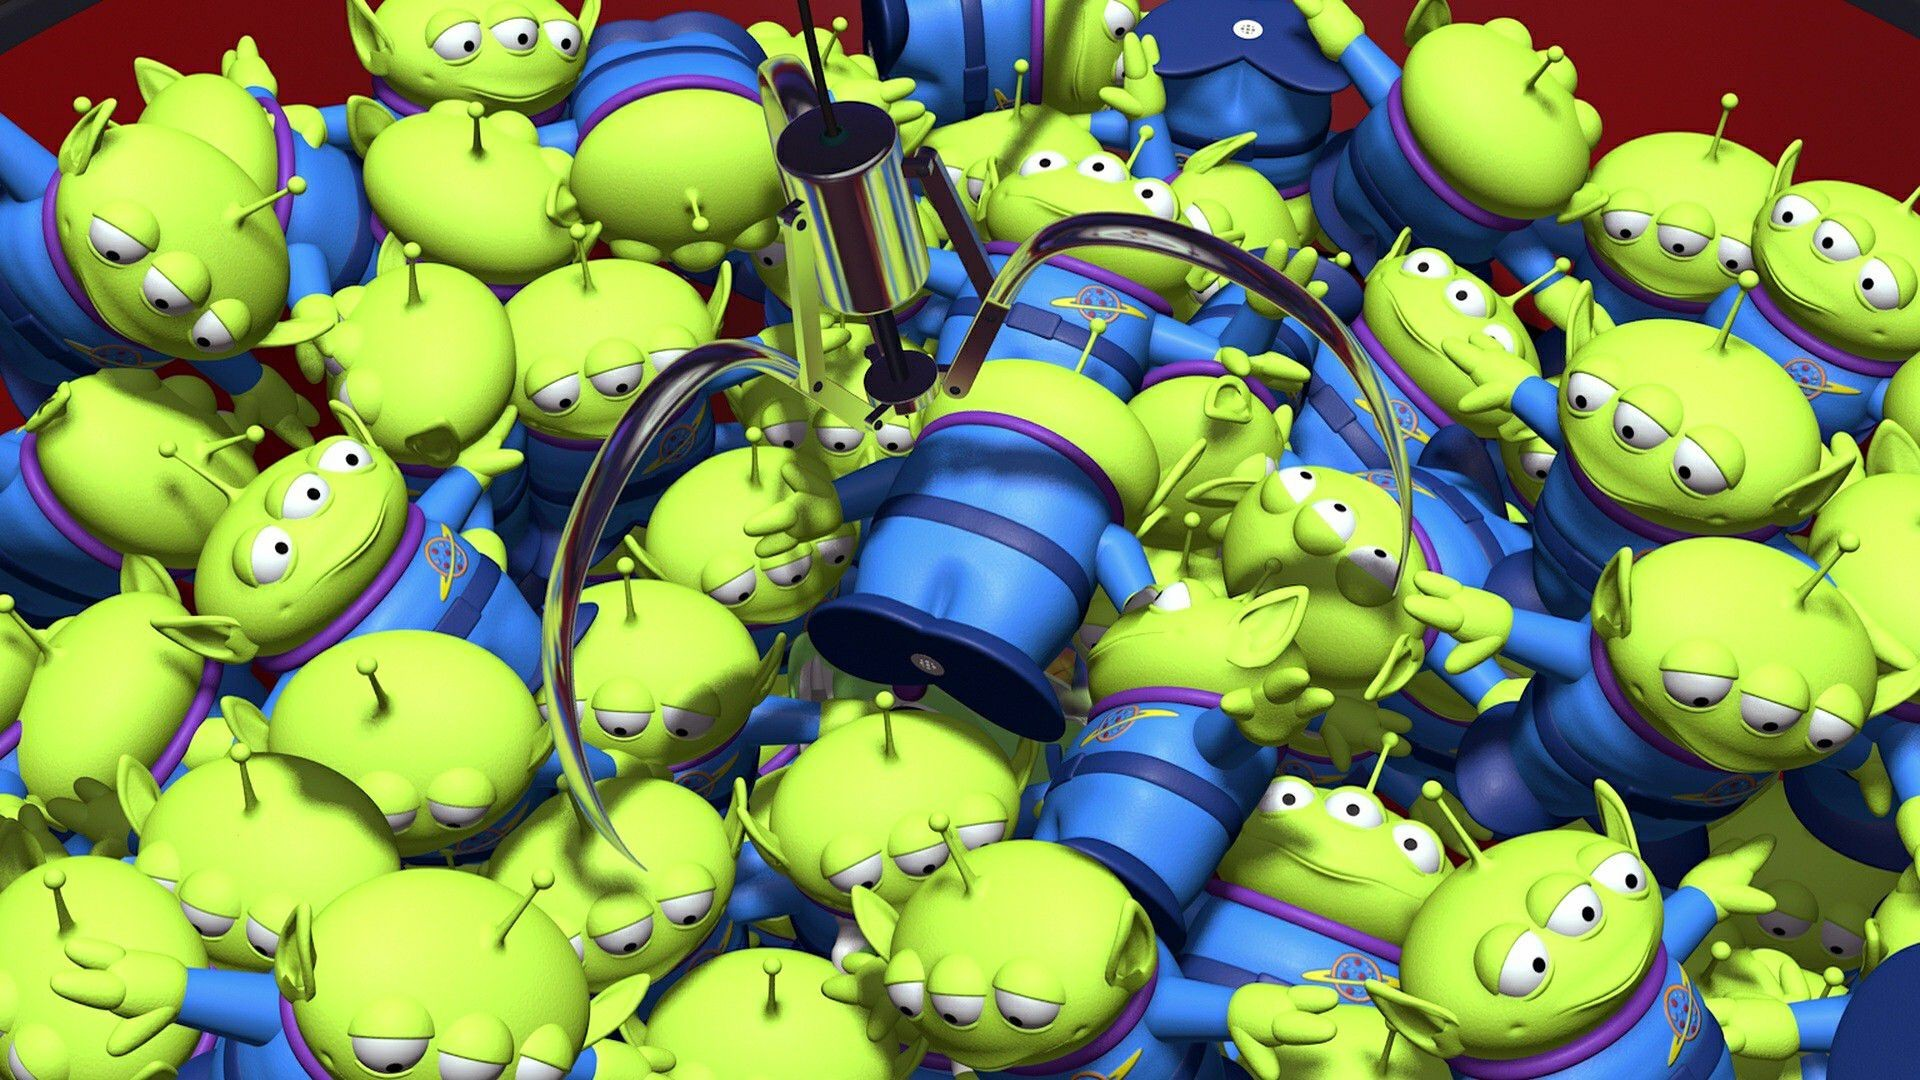 Toy story wallpapers wallpapertag - Toy story wallpaper ...